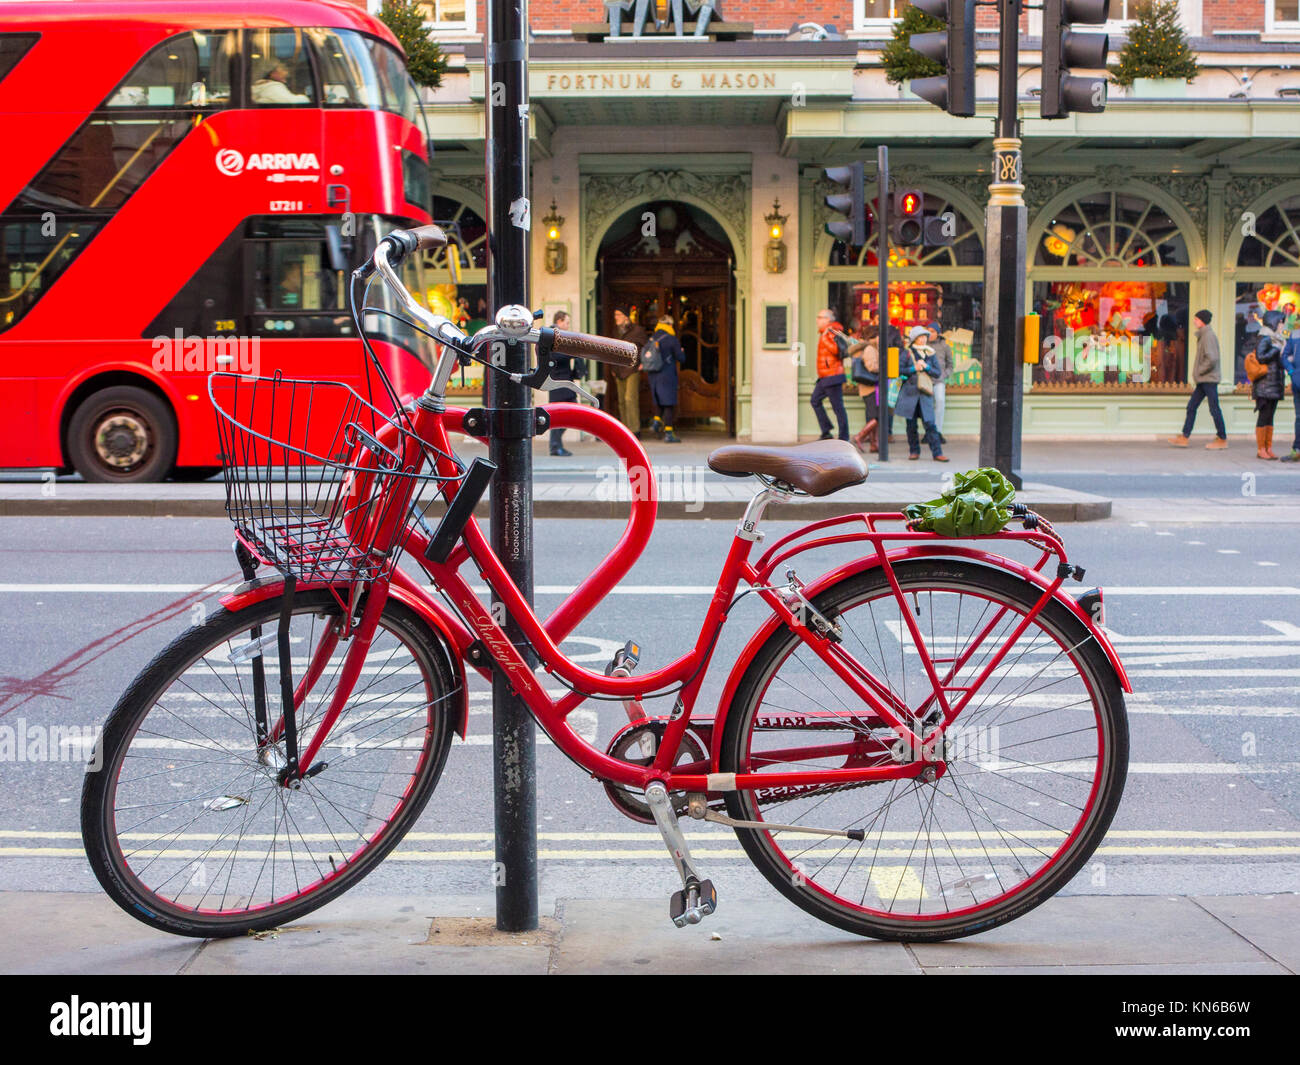 A smart red bicycle parked on Piccadilly outside Fortnum & Masons - Stock Image